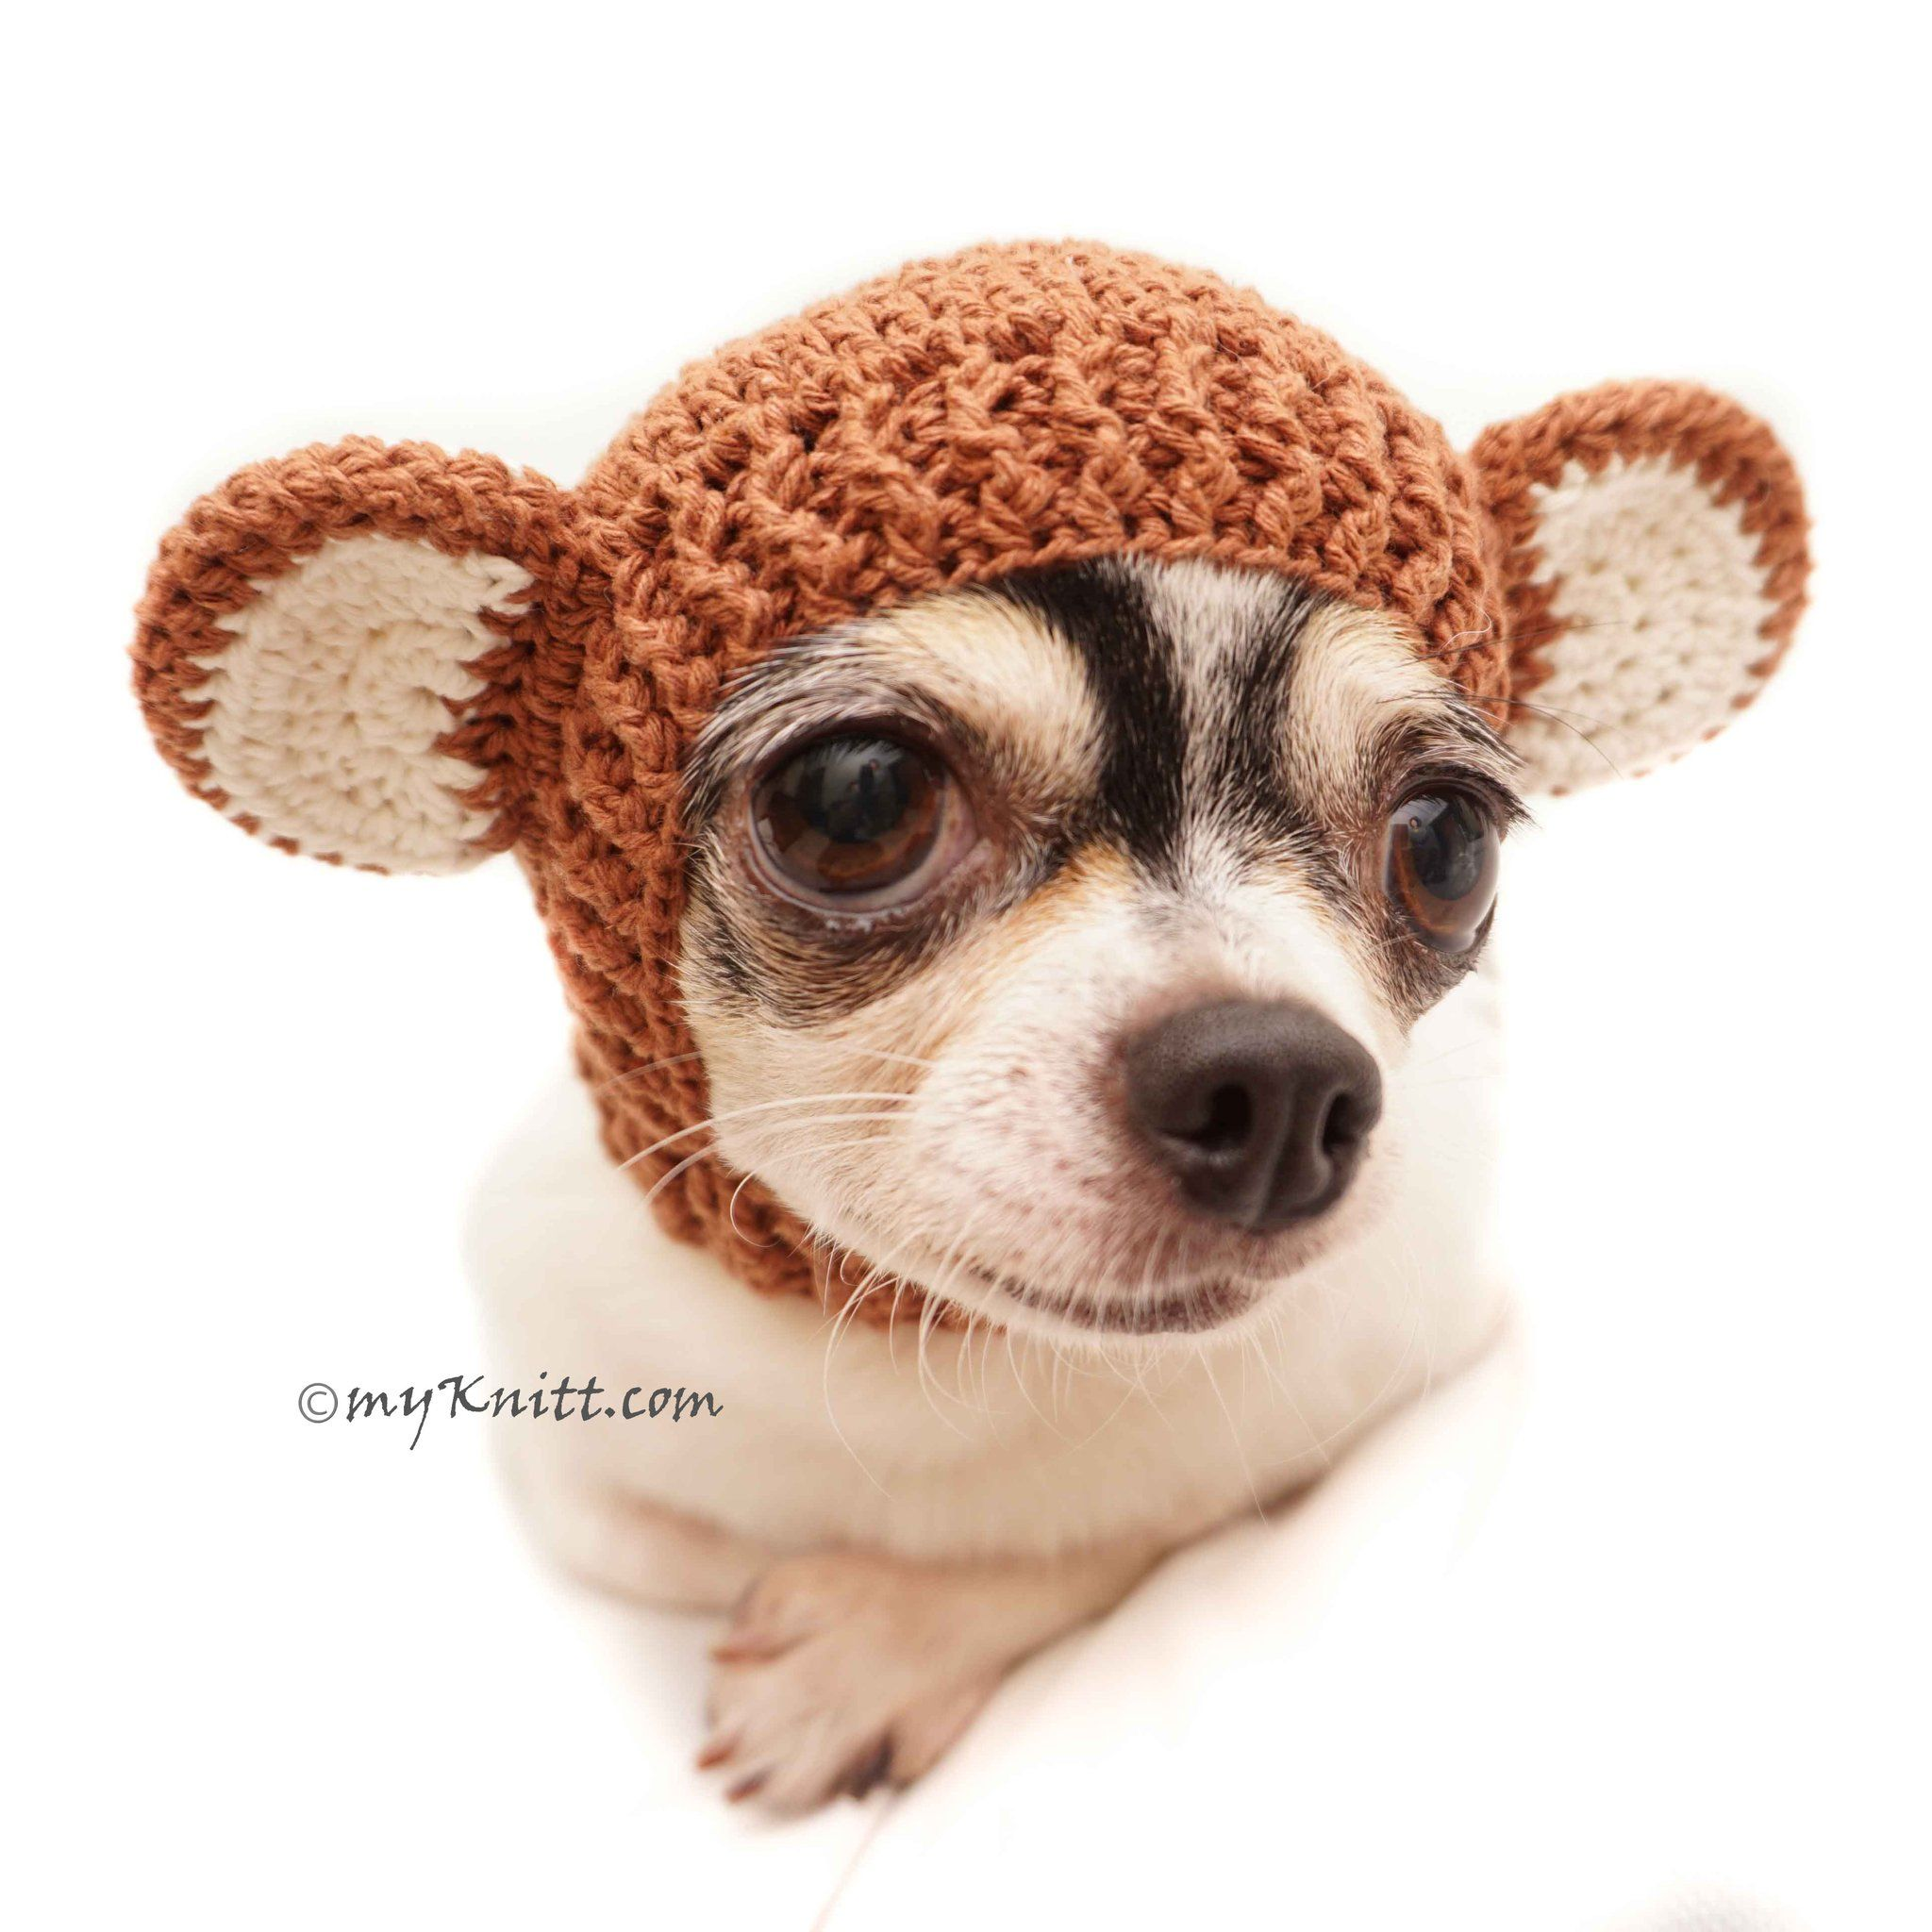 Monkey Dog Hats Crochet Dog Hat Cat Hats Db8 Dog Sweaters